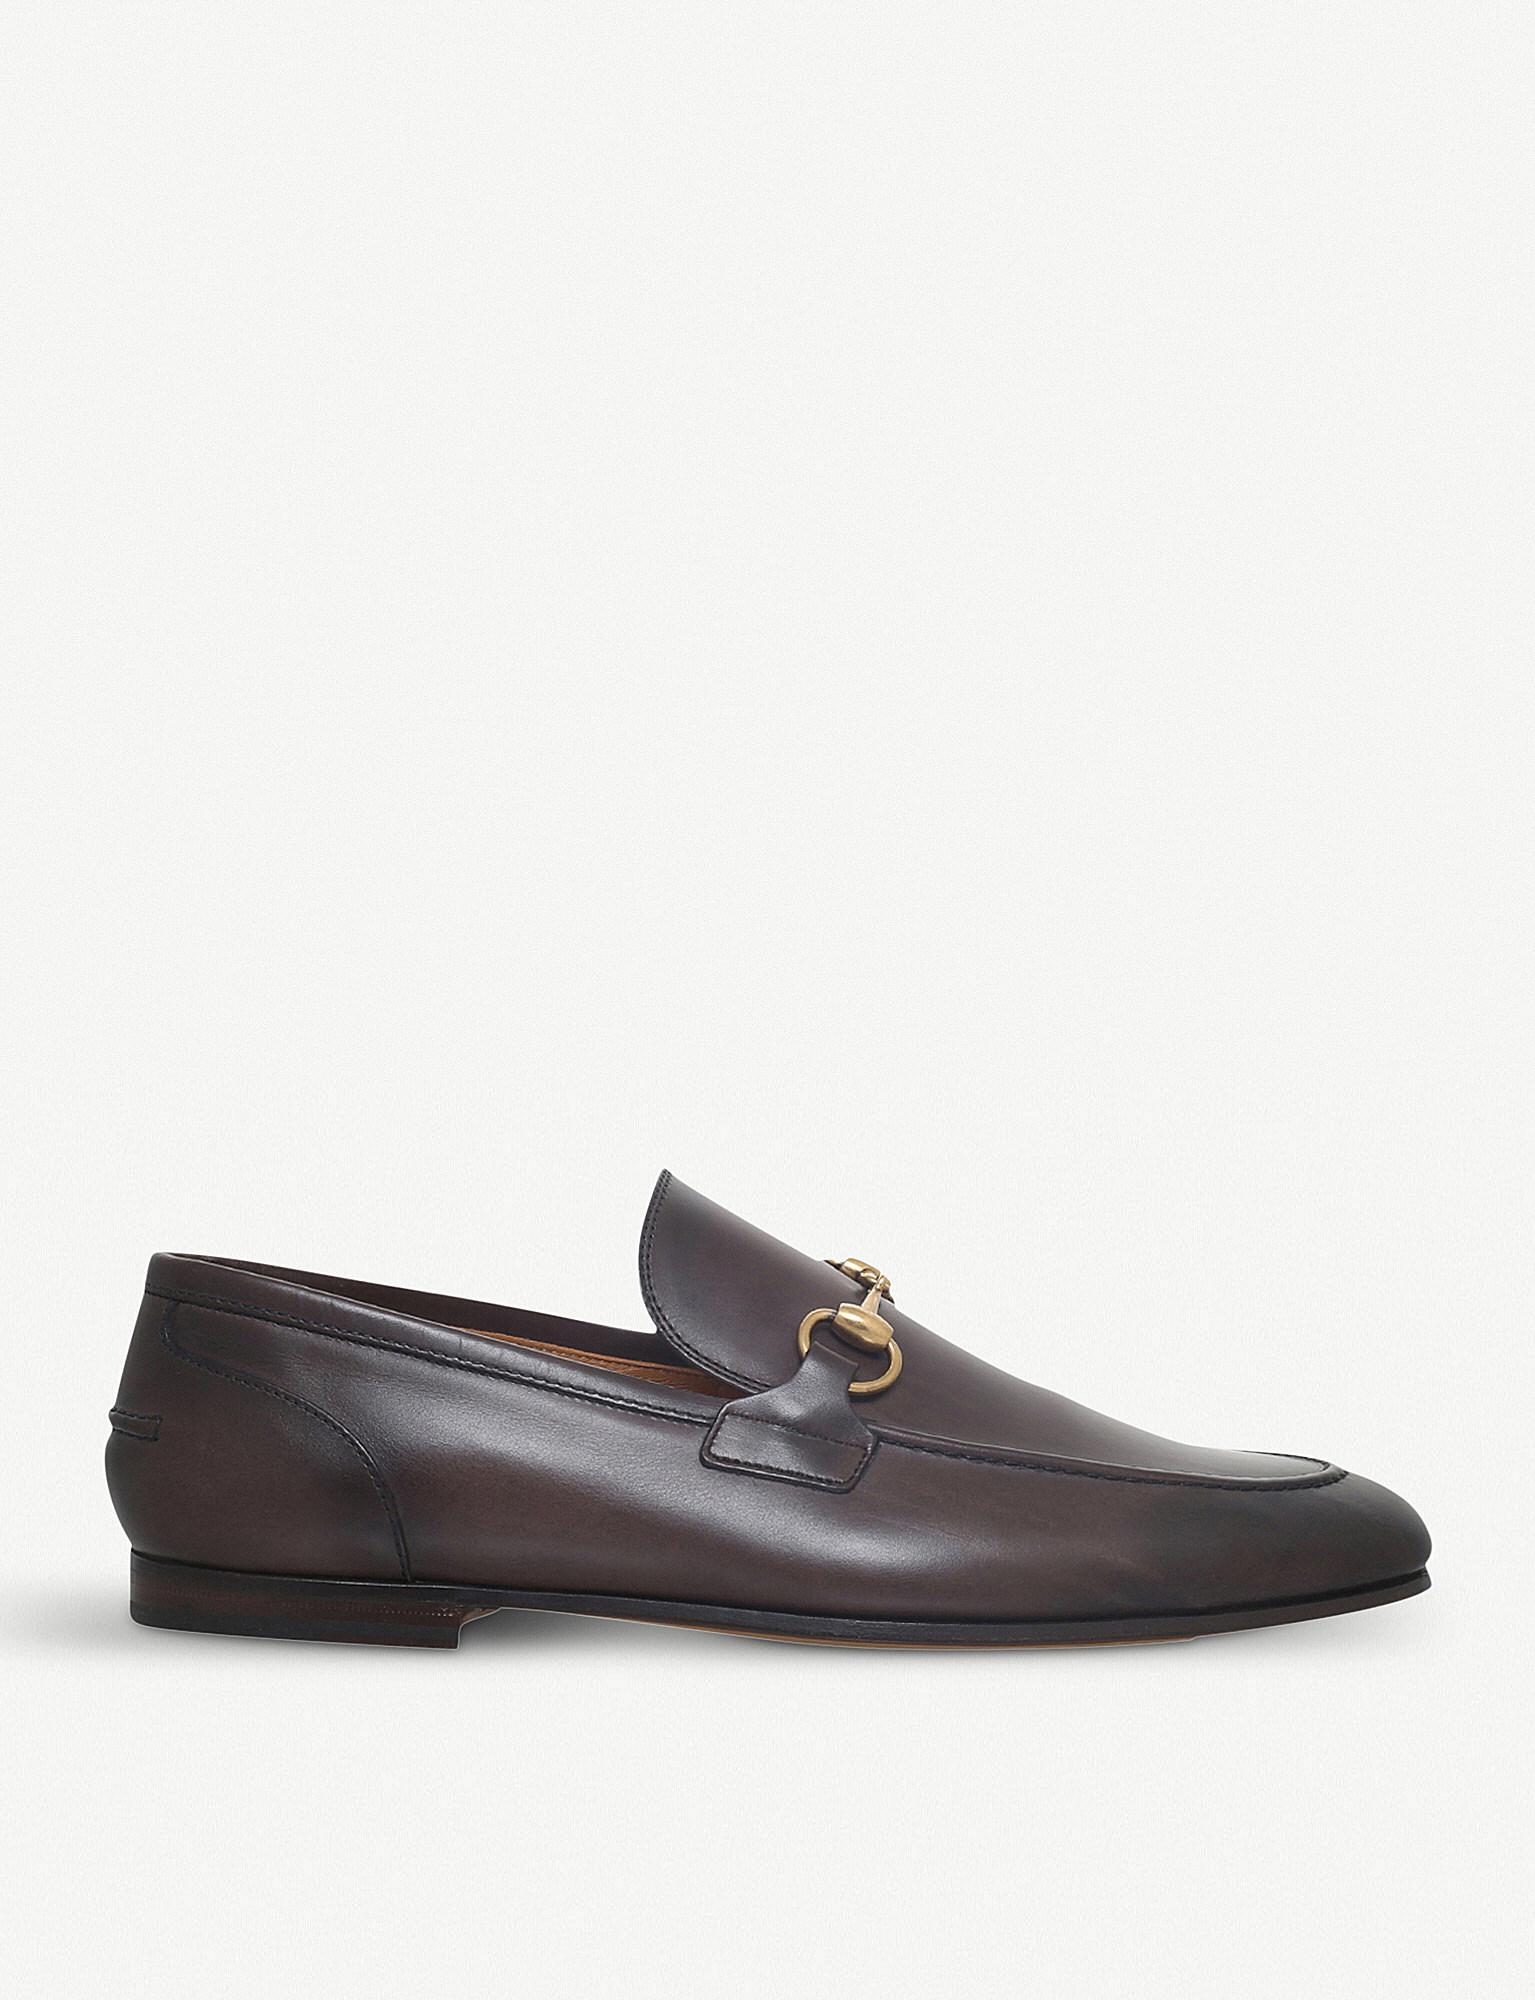 Gucci Jordaan Leather Moccasin Loafer cAKDHEkzLD